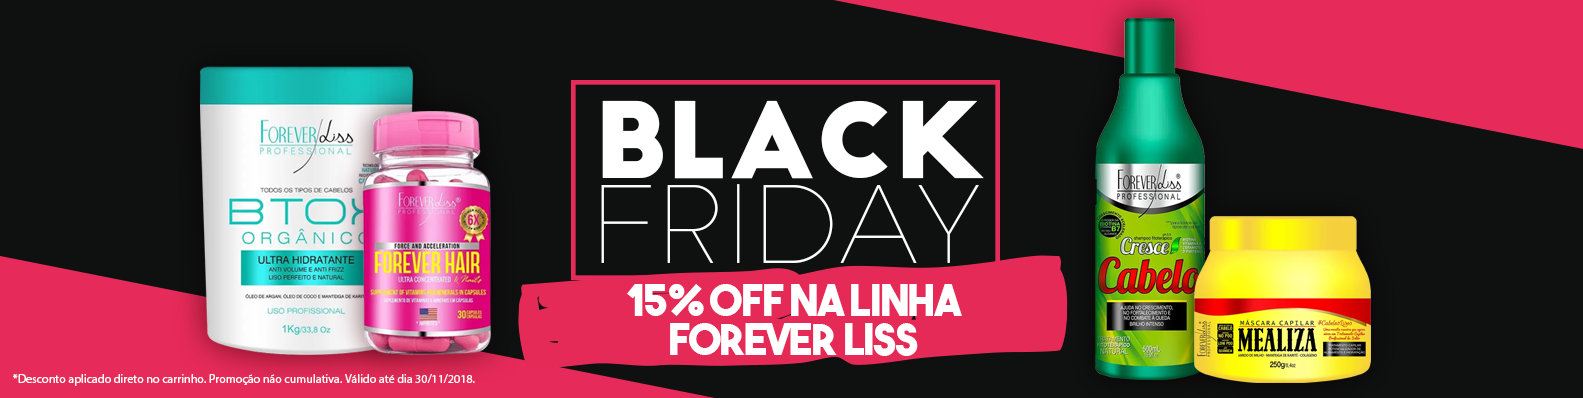 Black Friday Forever Liss